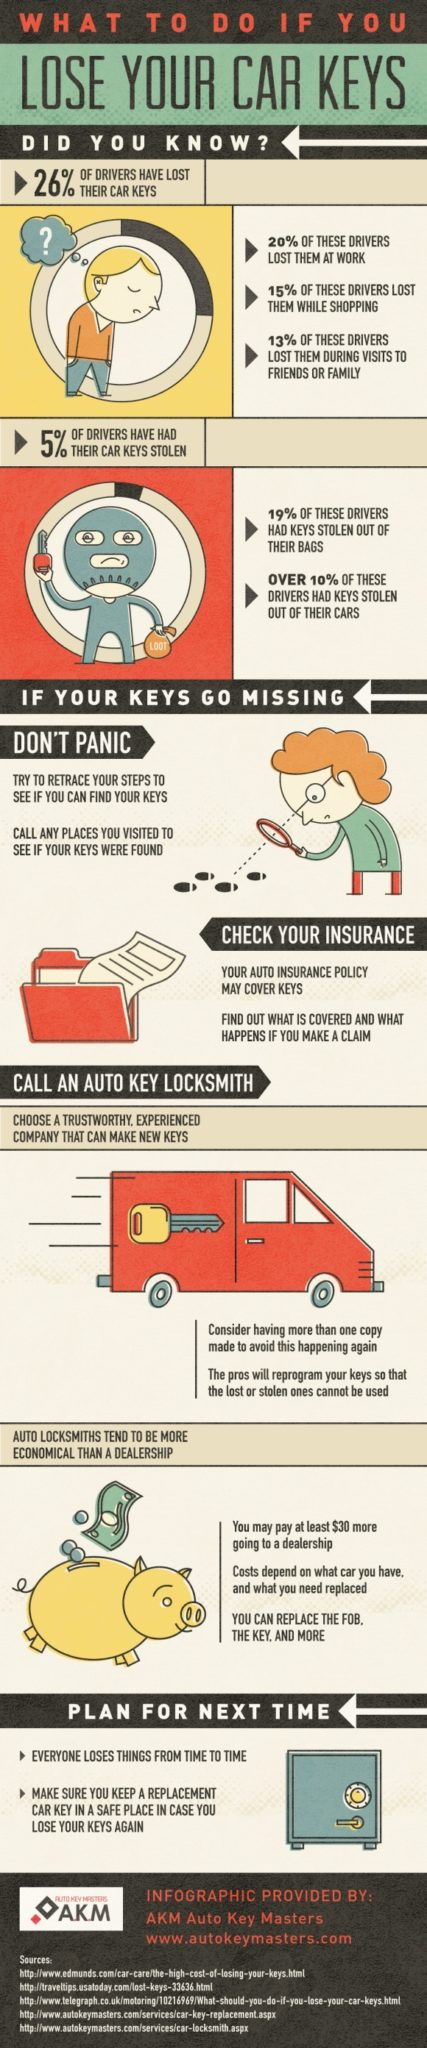 Locksmith Services Infographic